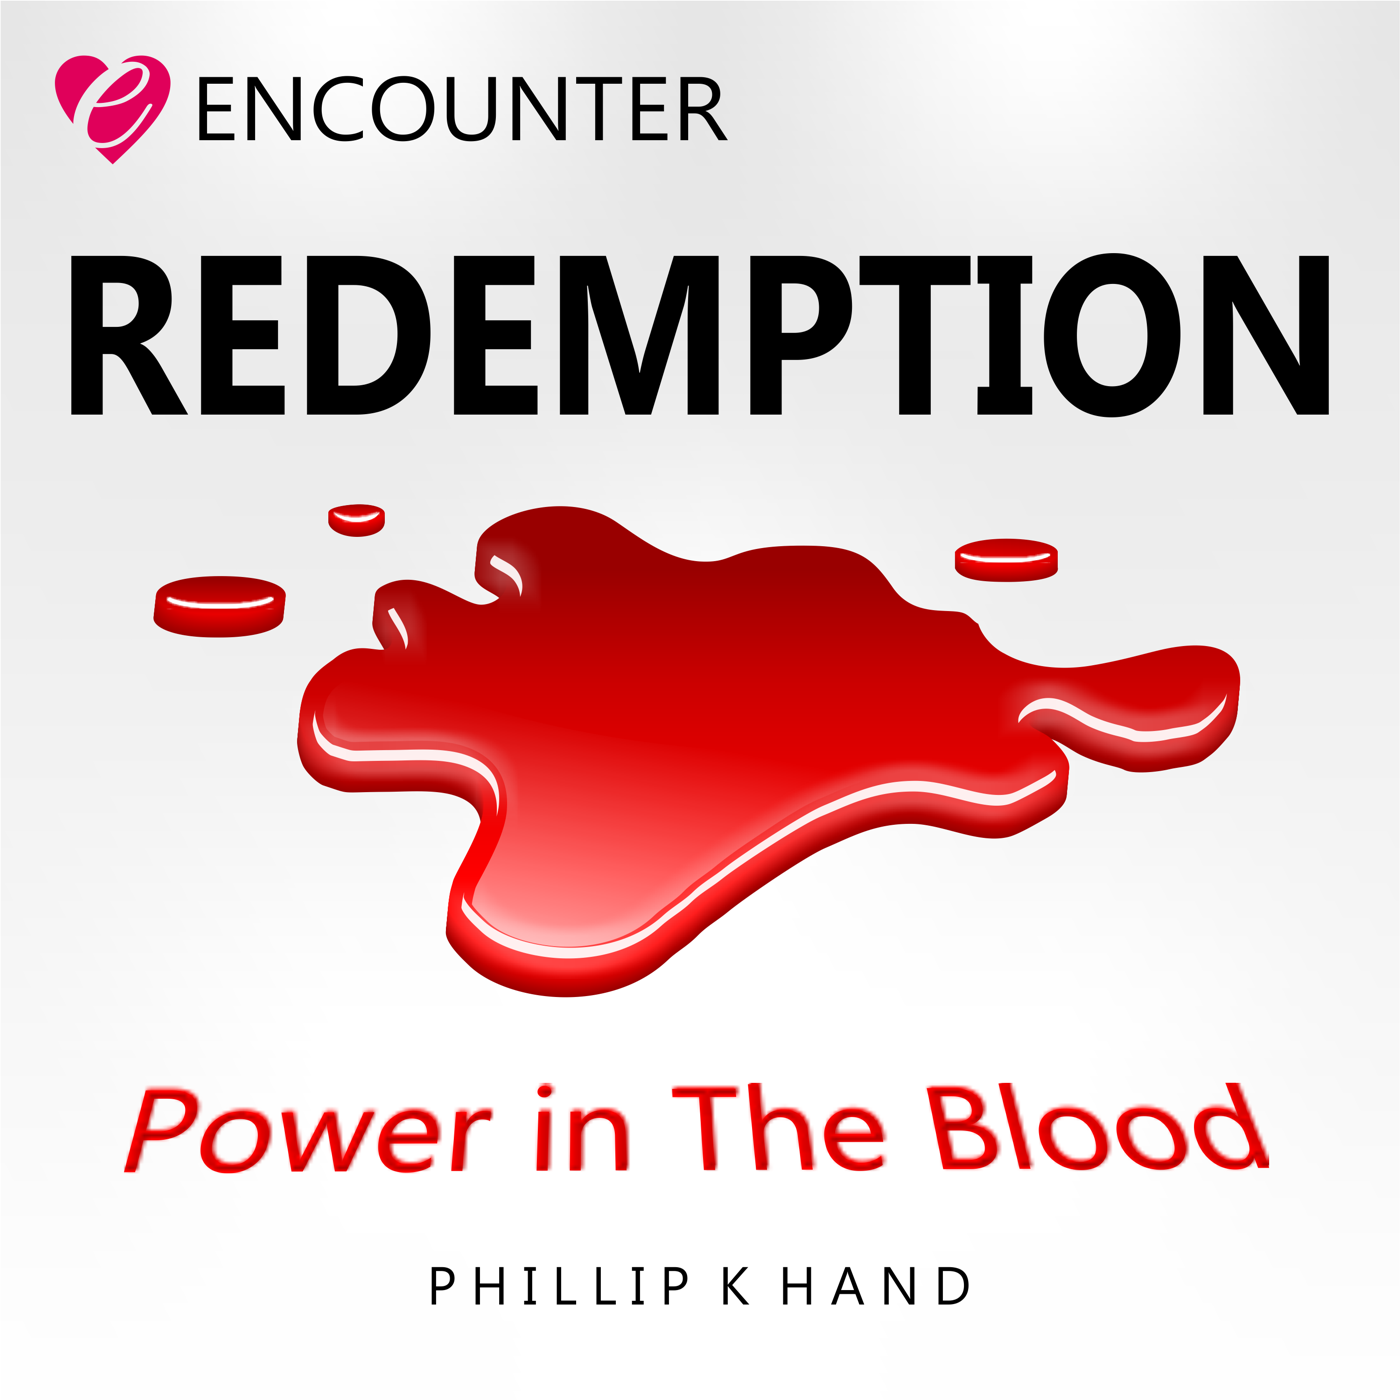 Redemption Power in The Blood